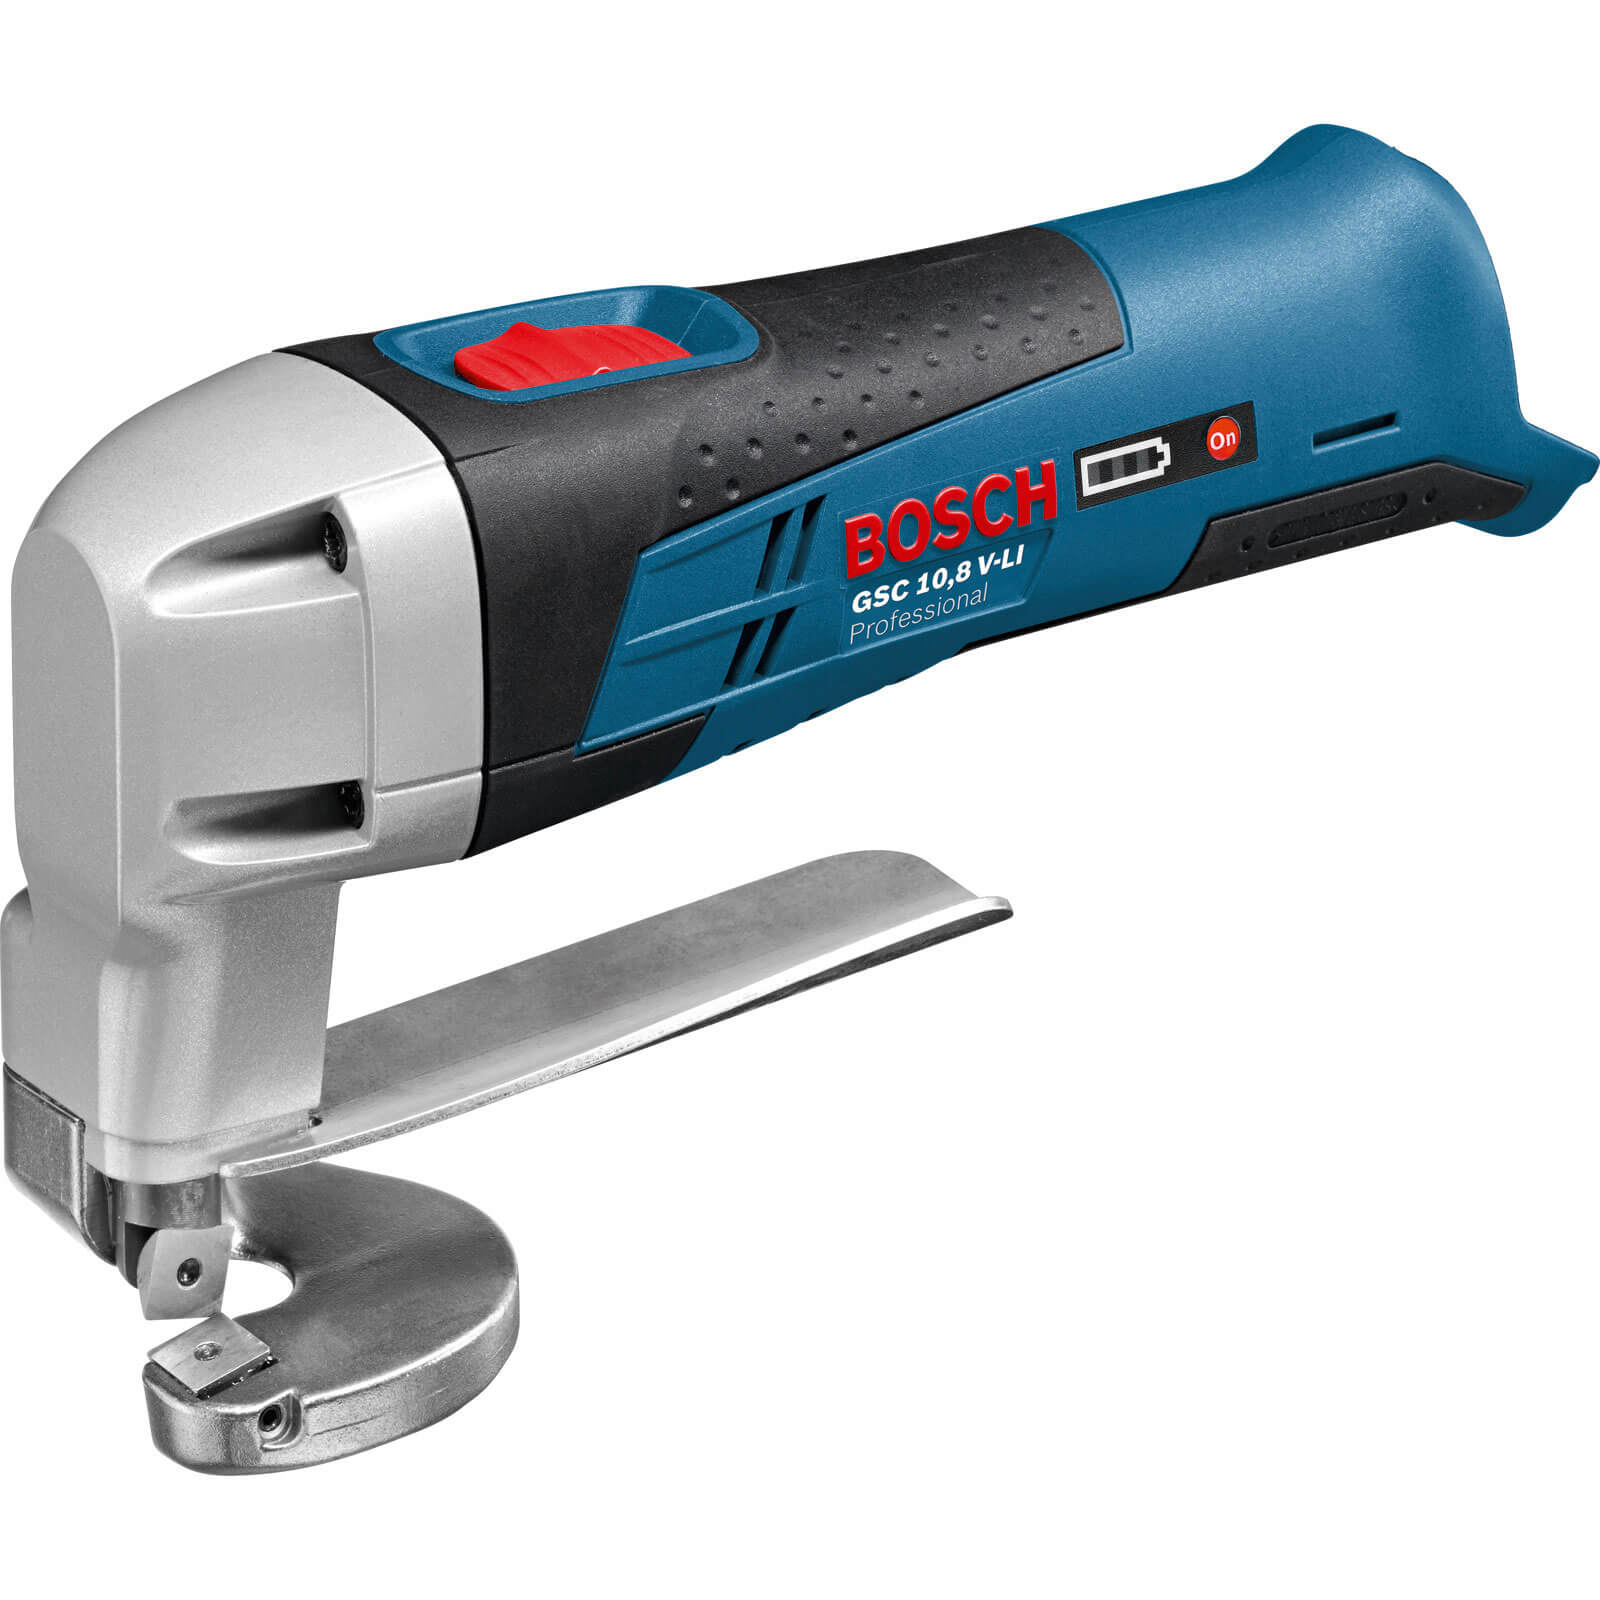 Bosch GSC 10.8V-Li 10.8v Cordless Metal Cutting Shear without Battery or Charger